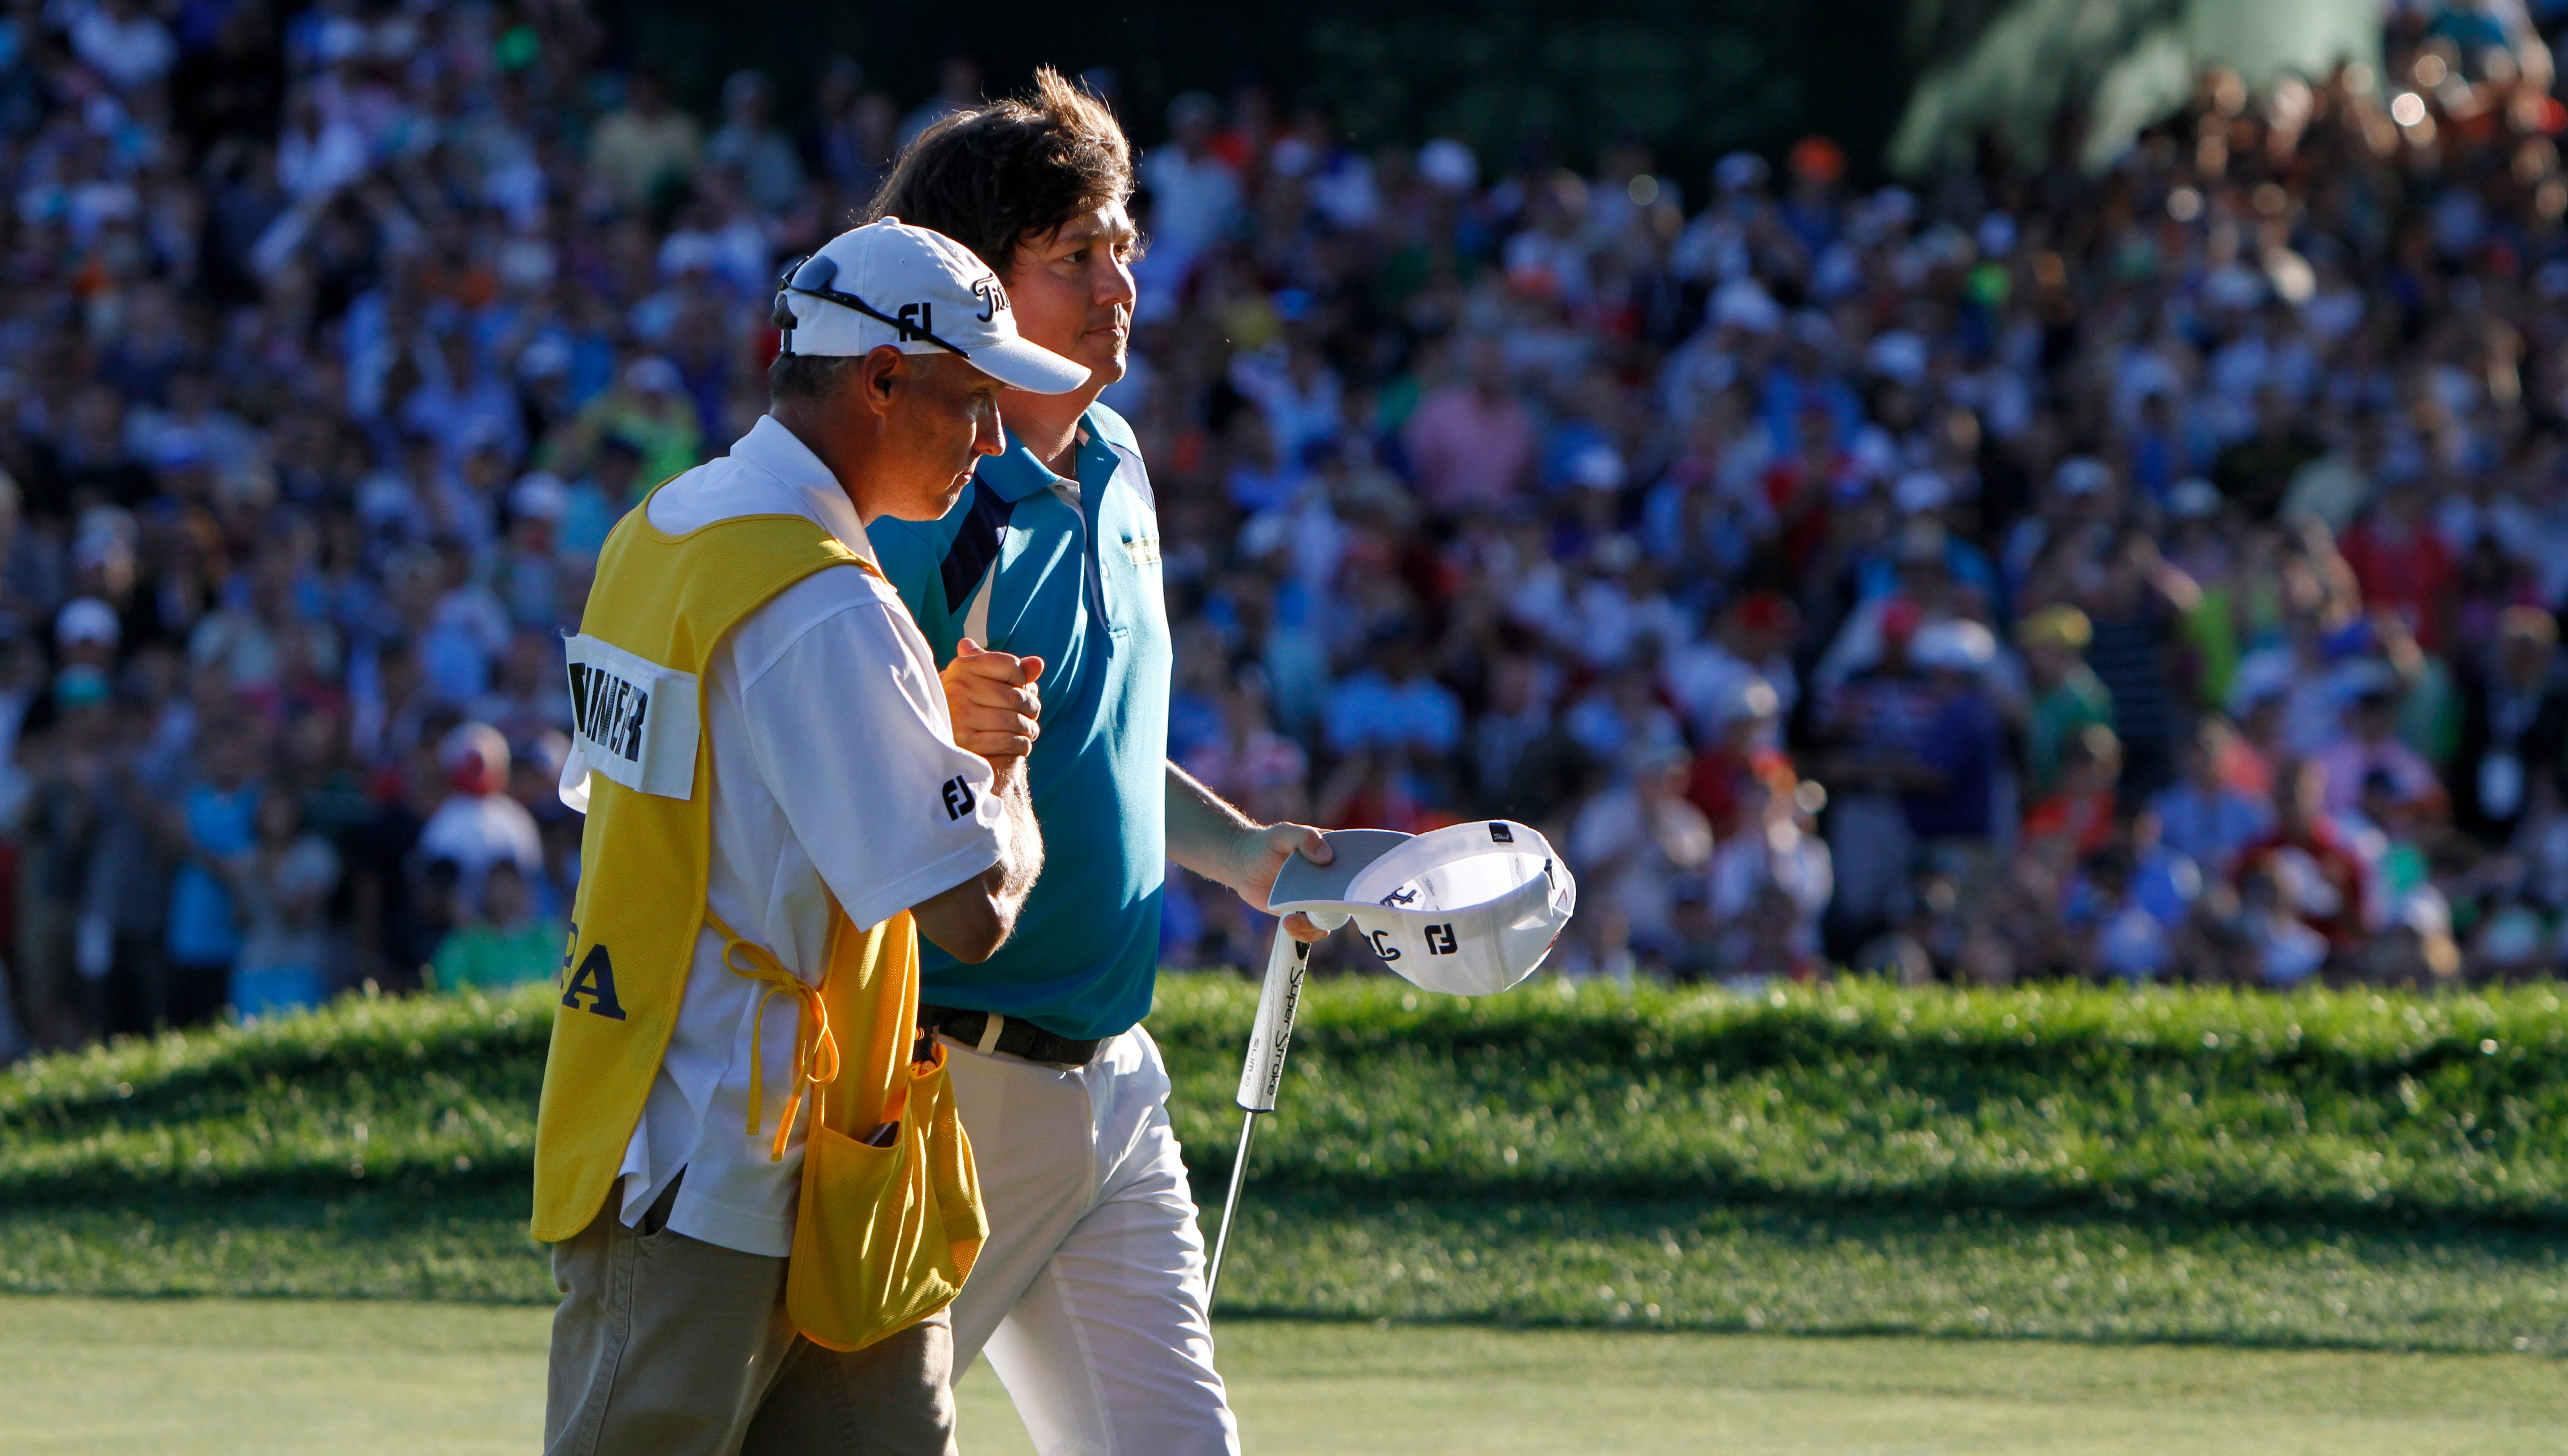 Jason Dufner wins the 95th PGA Championship at Oak Hill in Pittsford, NY August 11, 2013.